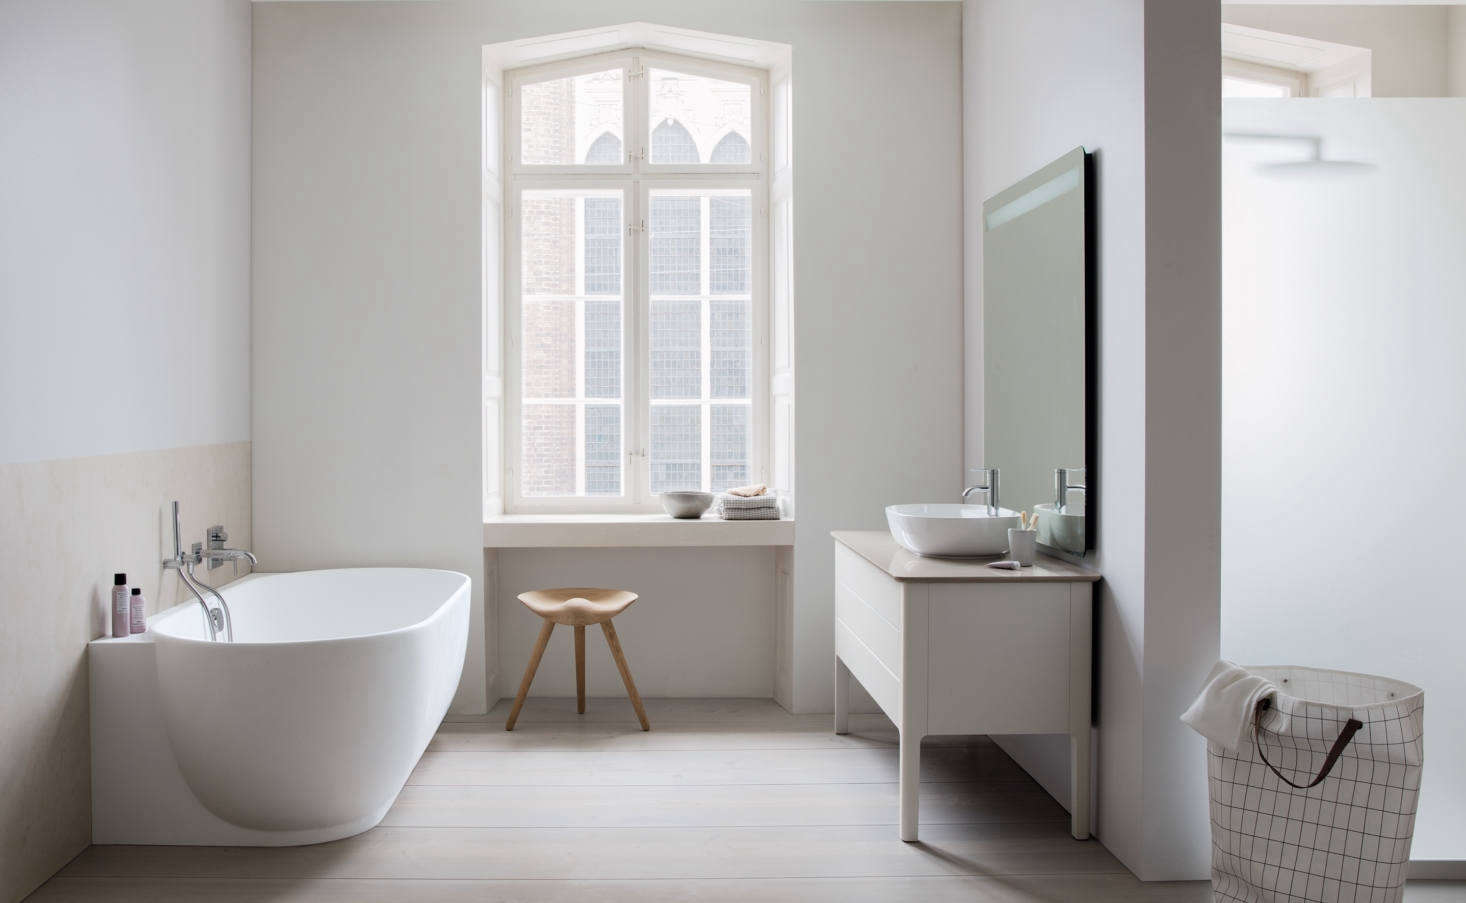 The bathtub is also available in a back-t0-the-wall and corner version with a ledge. The console is shown here with a walnut counter; the top drawers are available with wooden dividers.